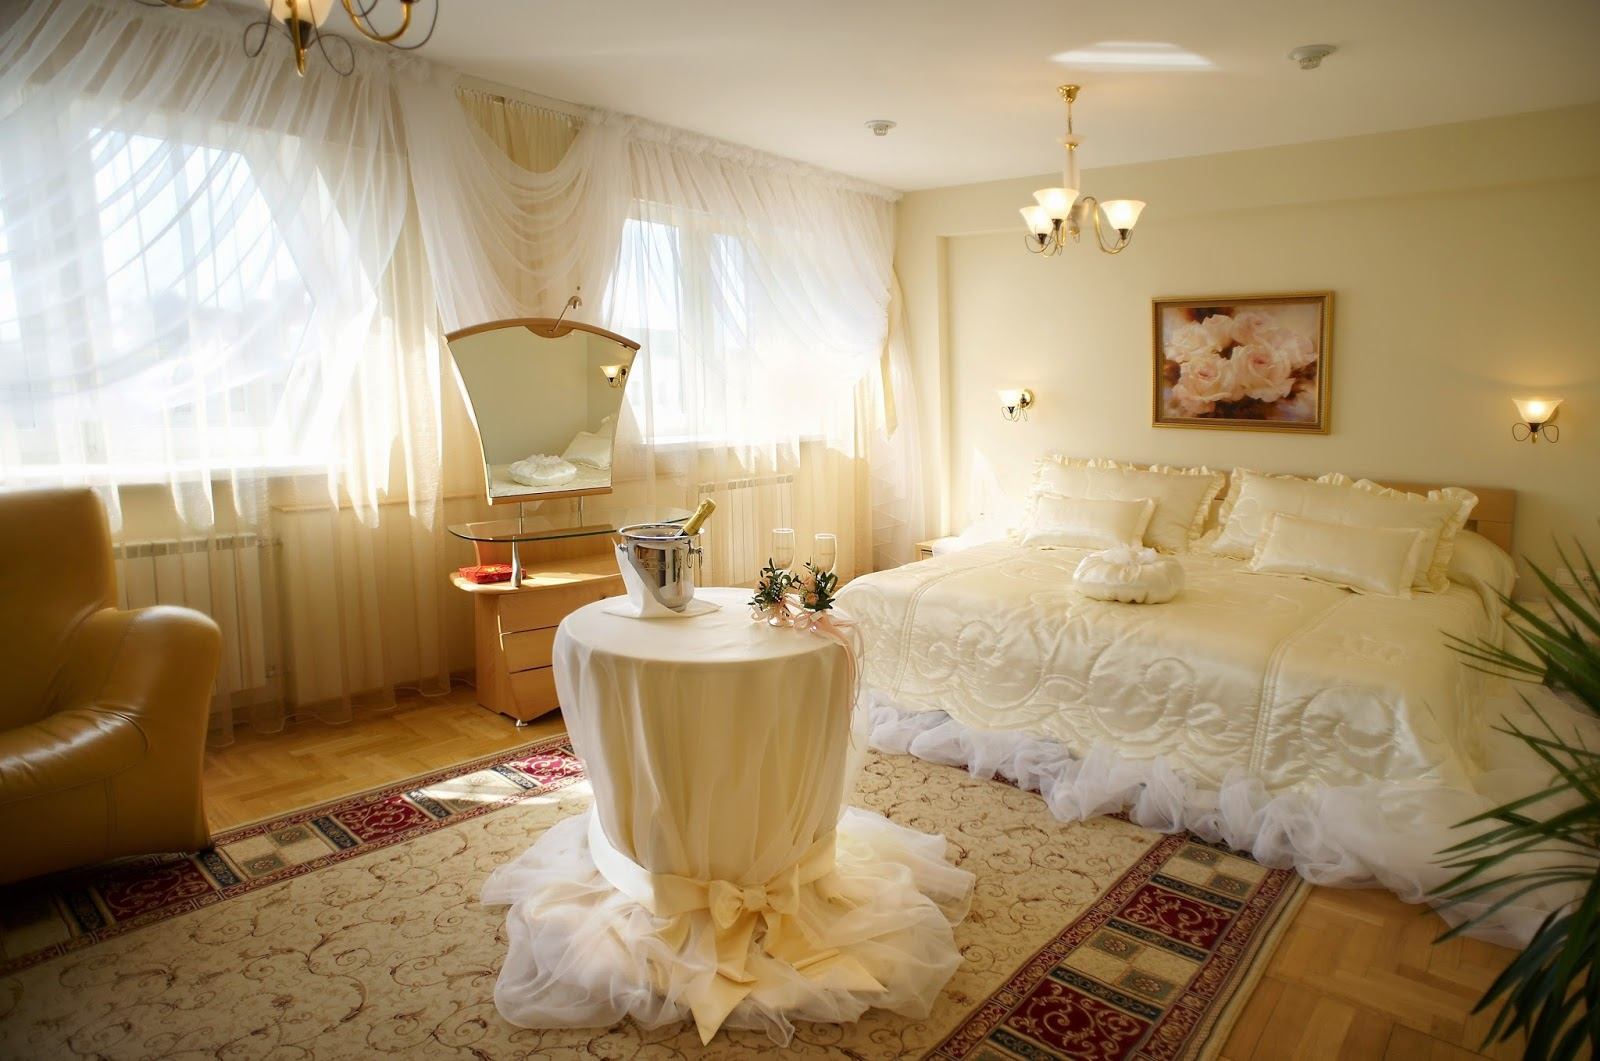 Romantic Bedroom Ideas for Married Couples